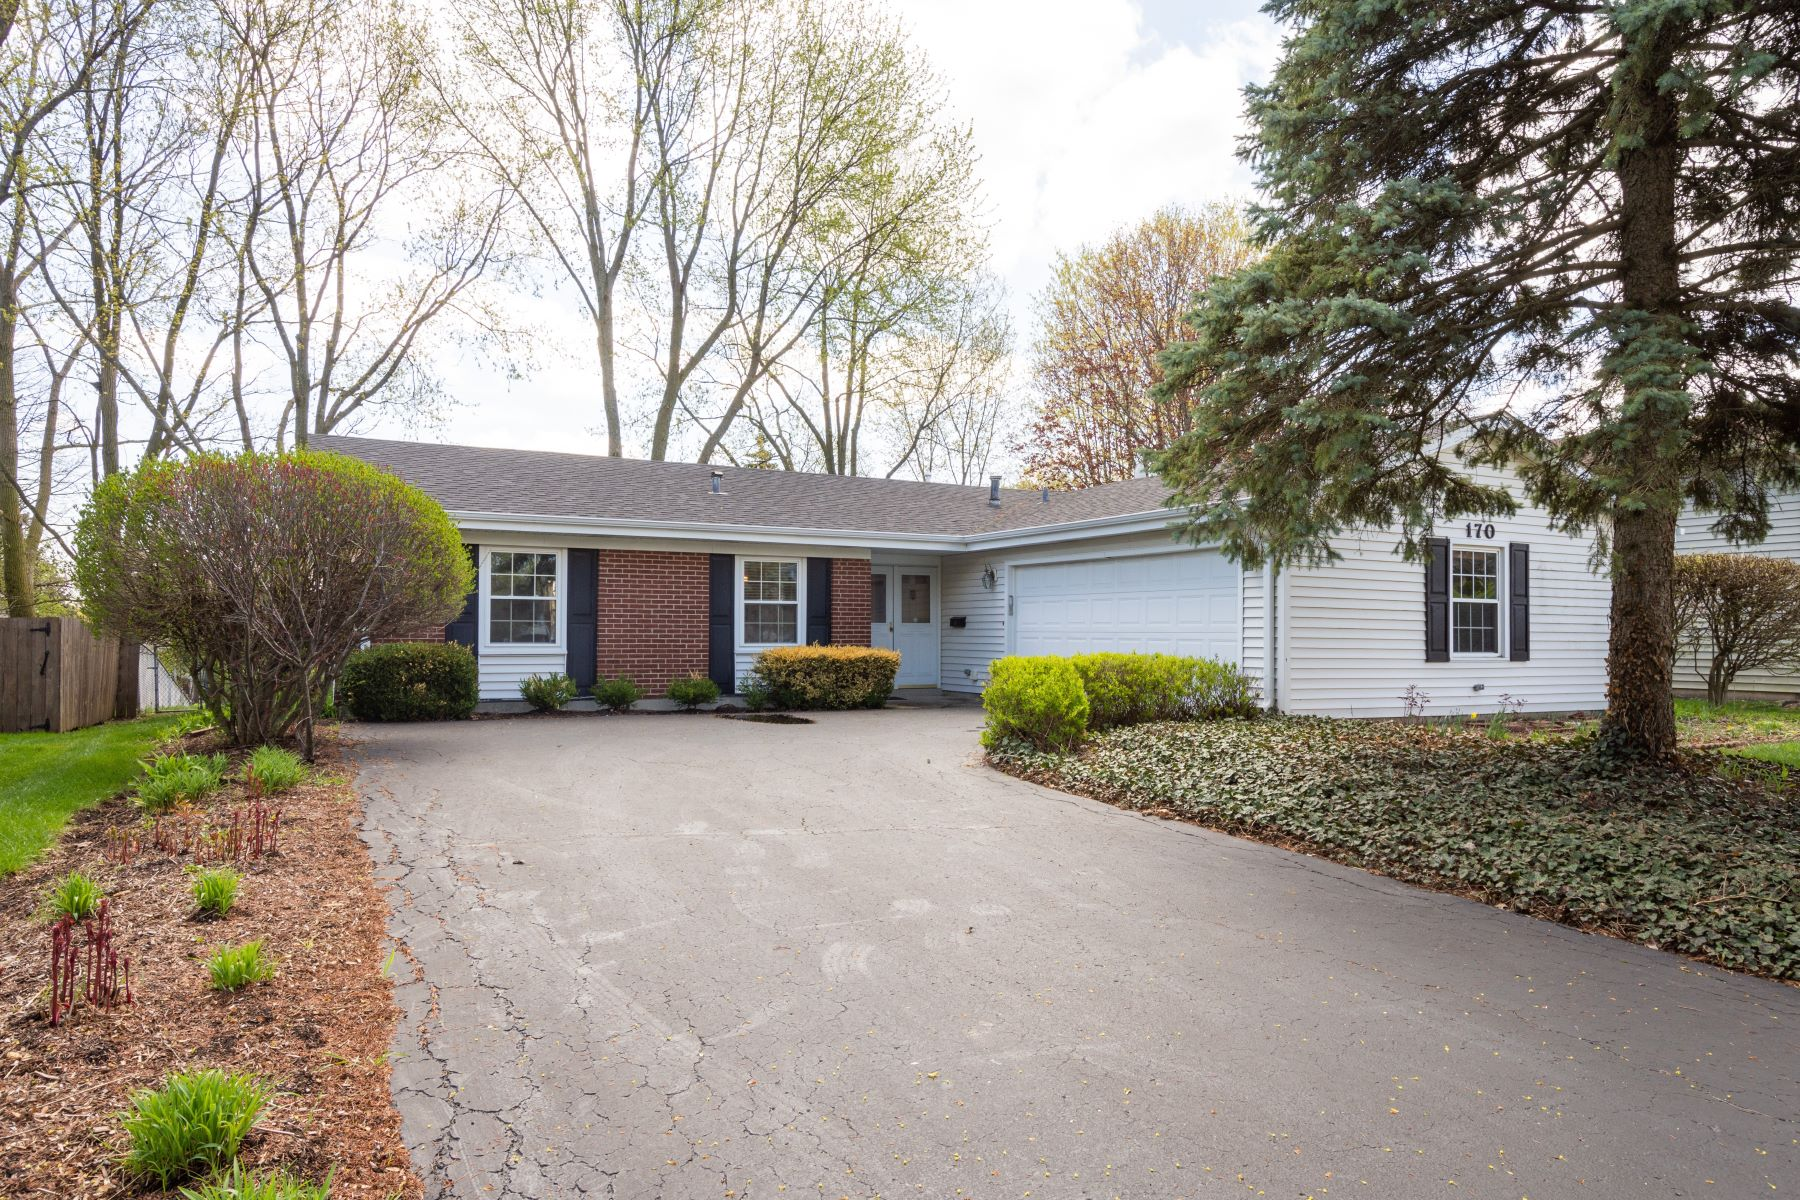 Single Family Home for Active at Fixer Upper Alert! 170 Red Bridge Road Lake Zurich, Illinois 60047 United States